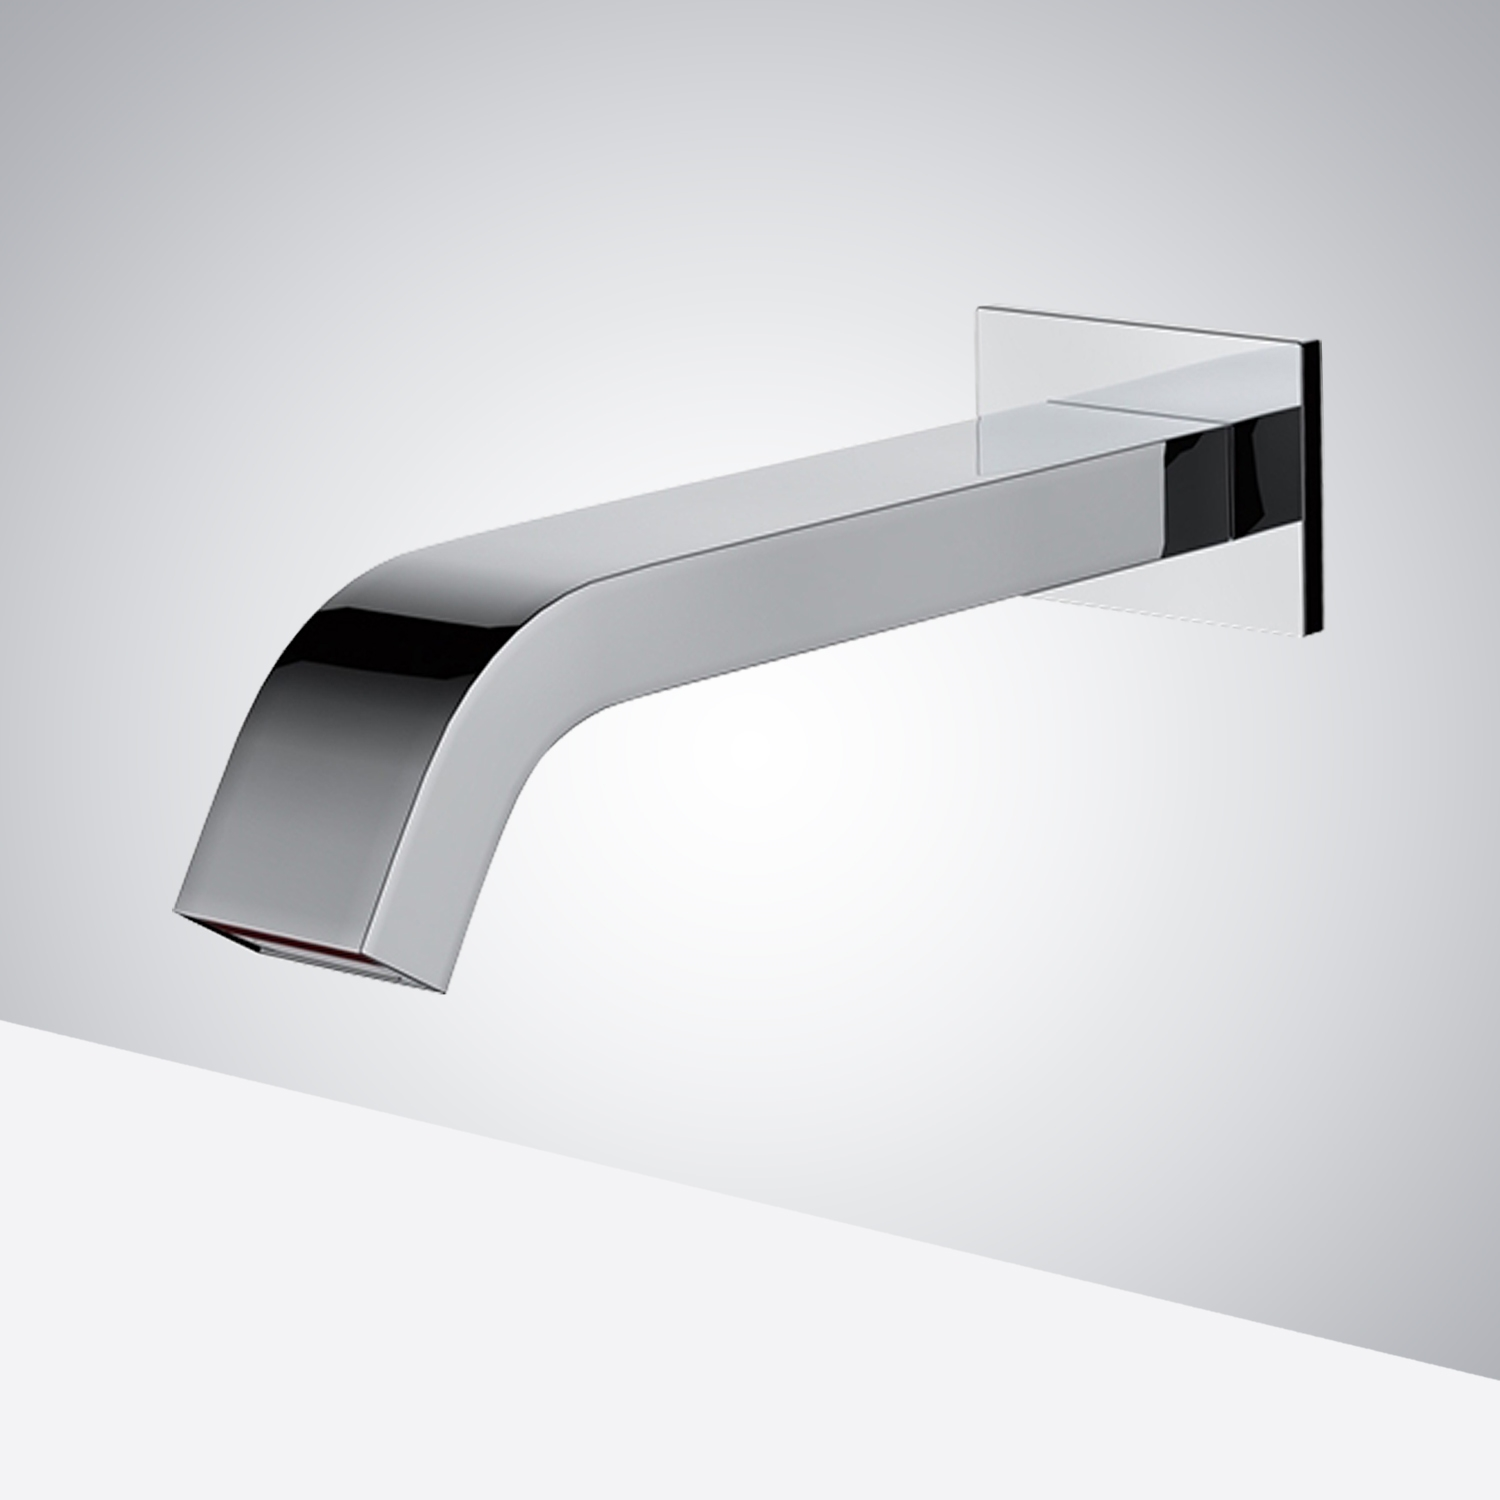 sink utility home contemporary design faucet laundry product proflo mounted wall commercial mount faucets